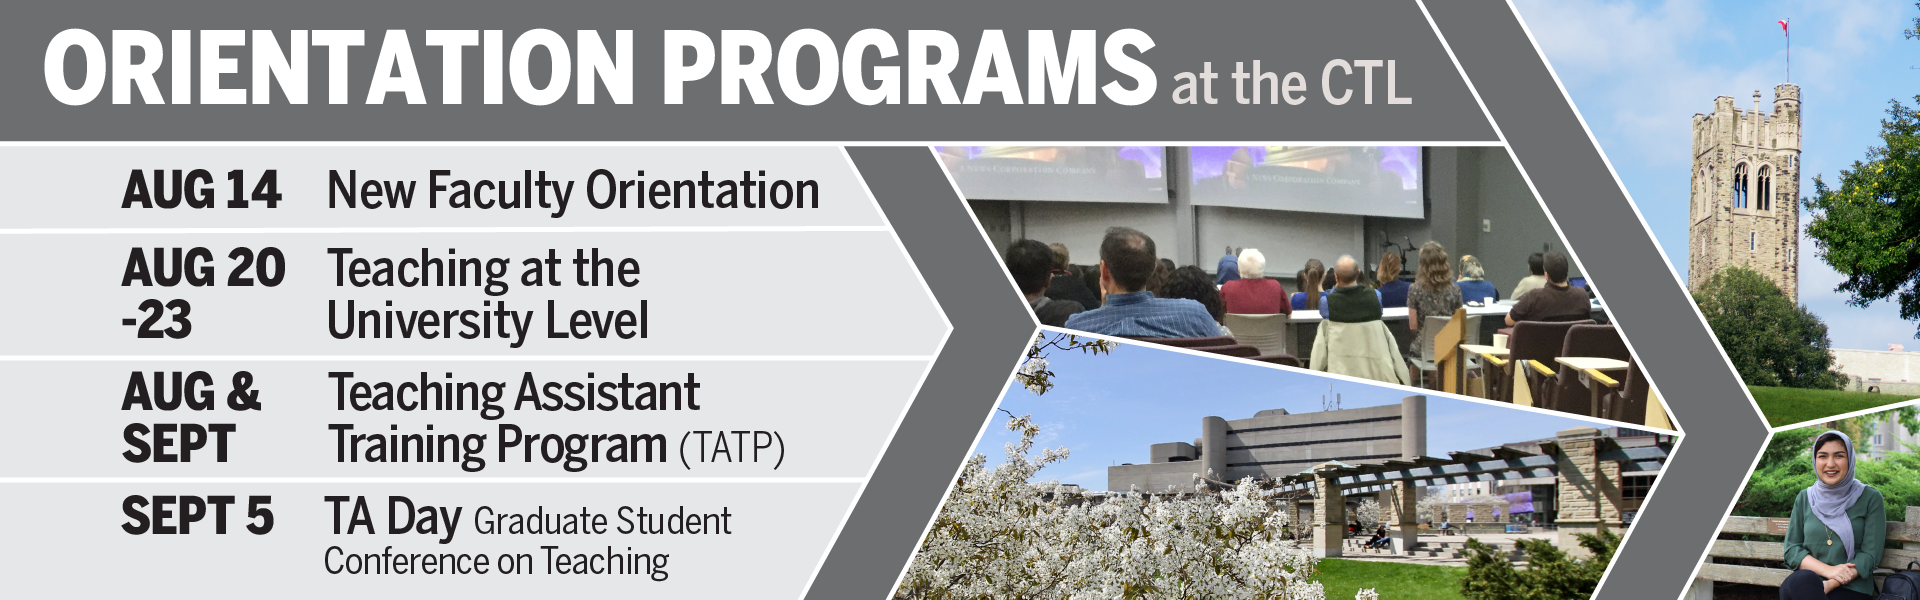 Orientation Program Dates